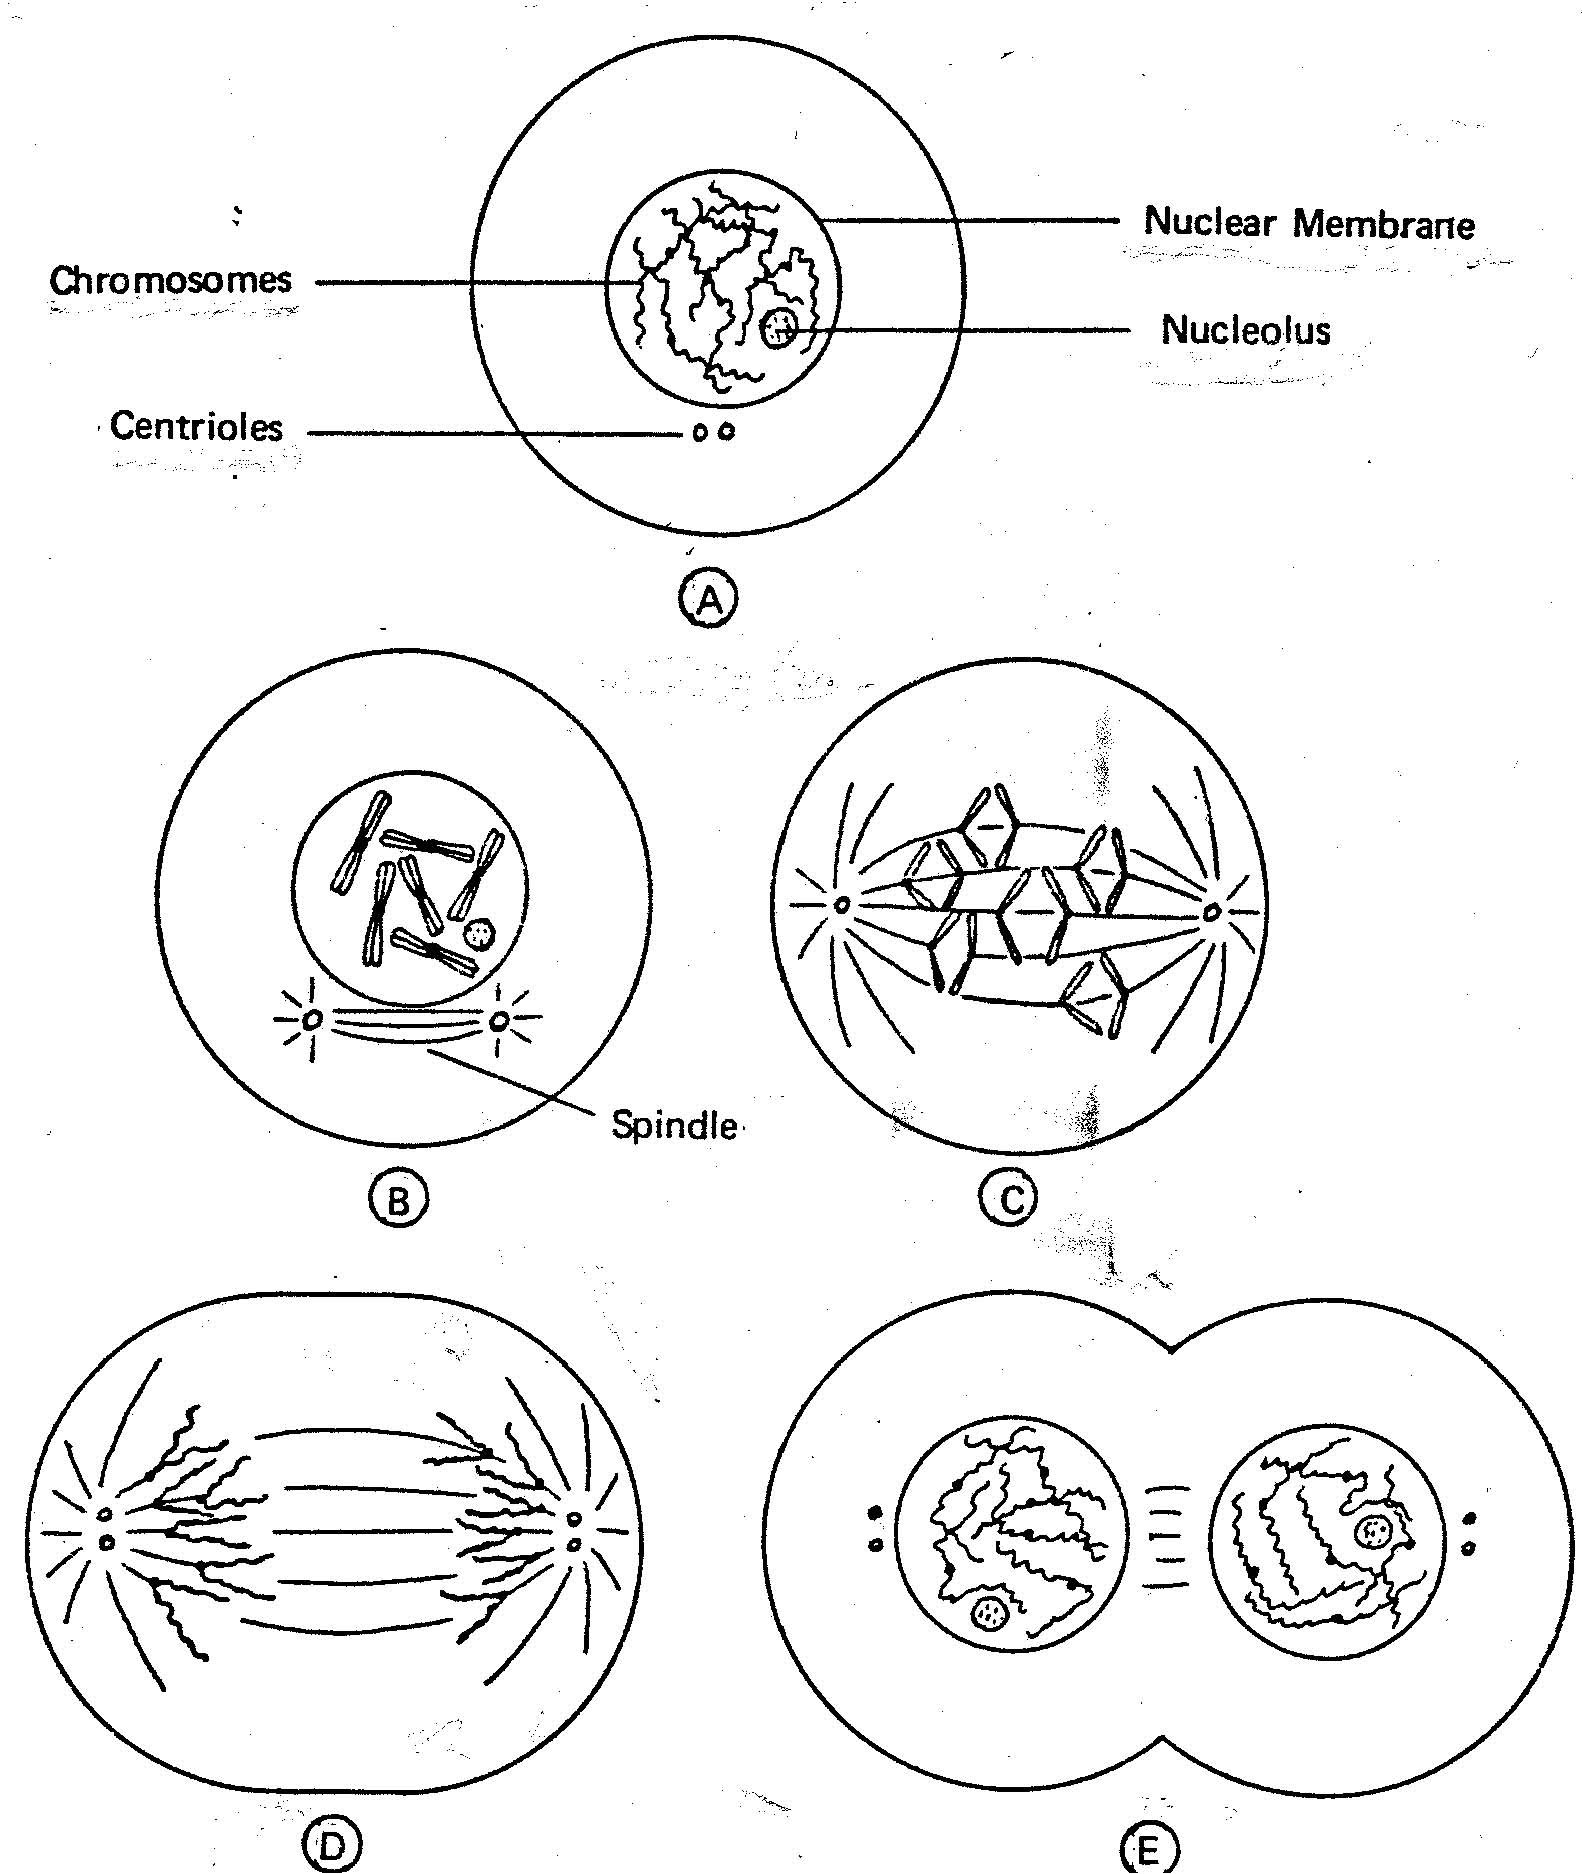 Cell Cycle Drawing Worksheet At Free For Personal Labeled Diagram Of A Eukaryotic Lab Manual 1582x1874 Mitosis